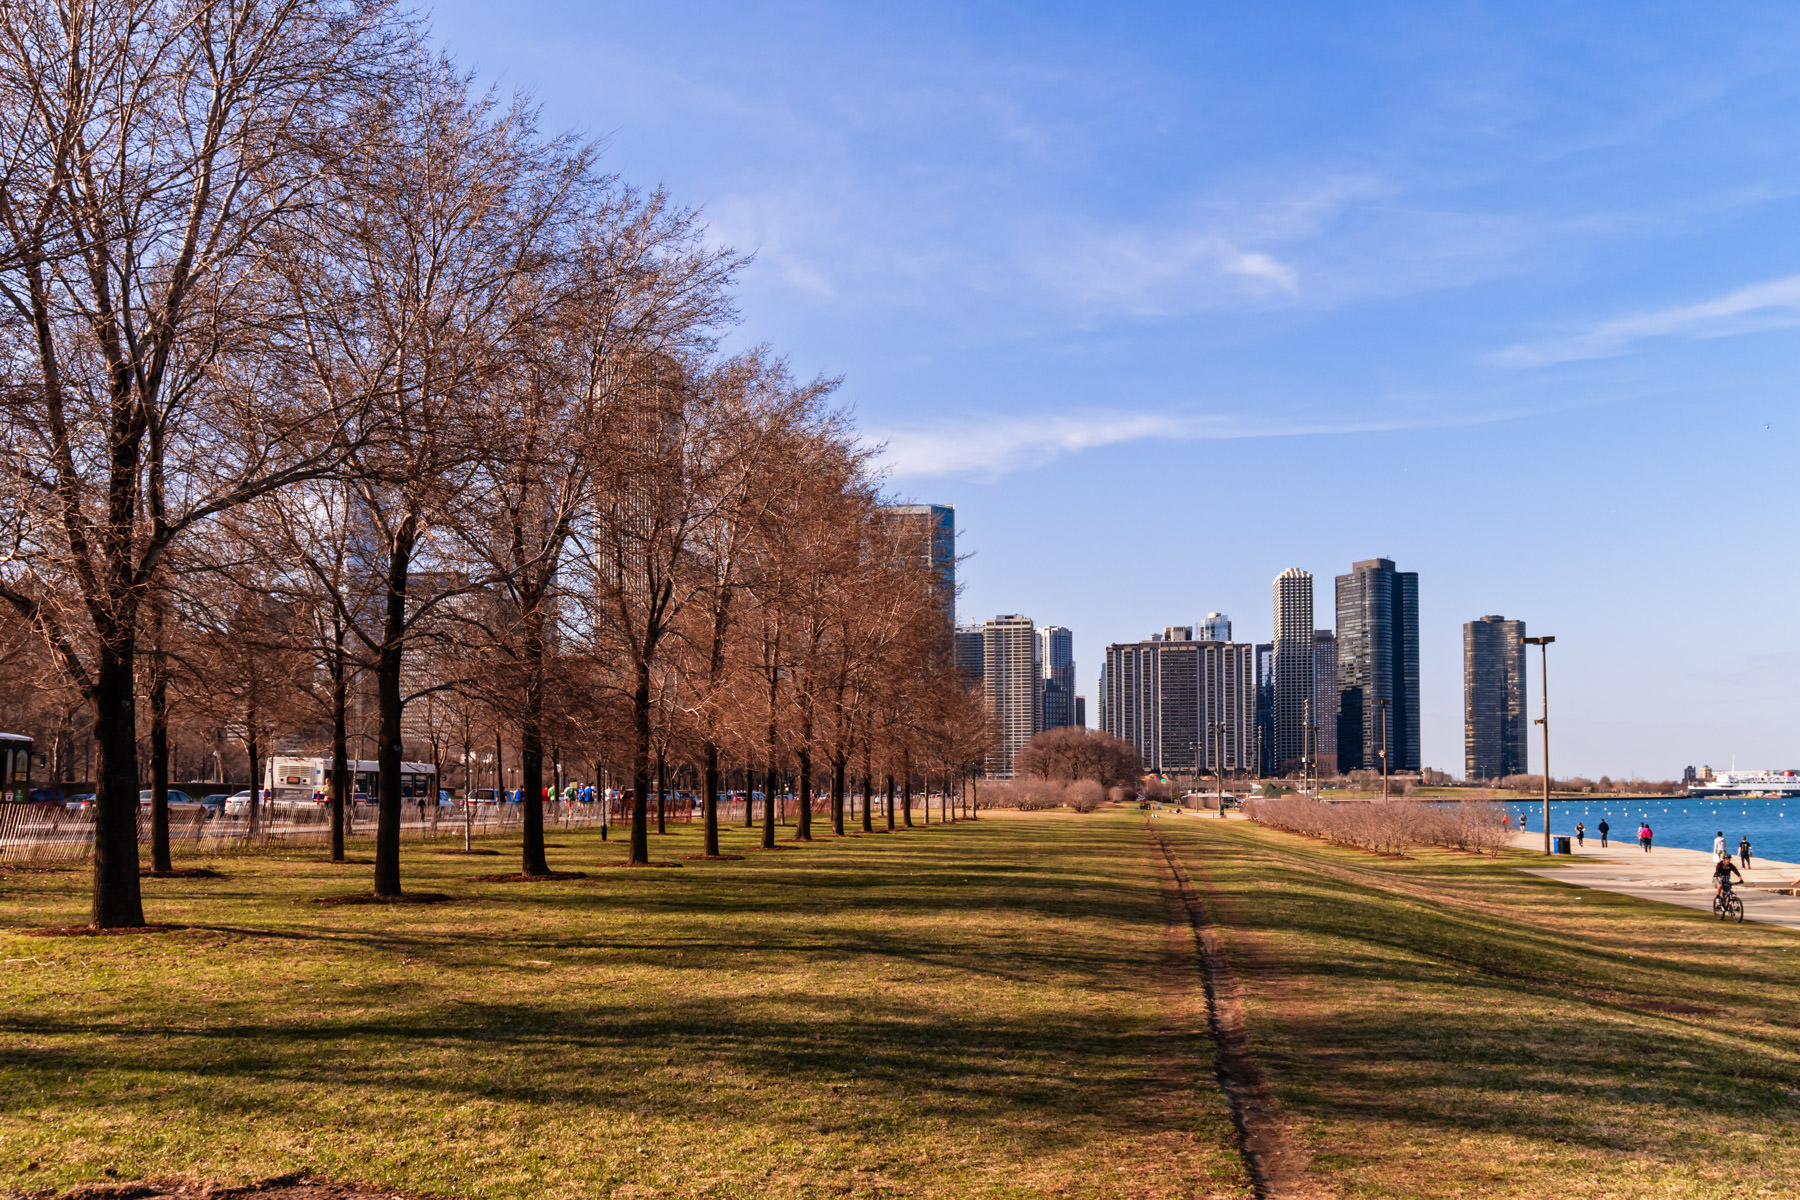 A row of trees stretches along the Lake Michigan shore in Chicago's Grant Park.